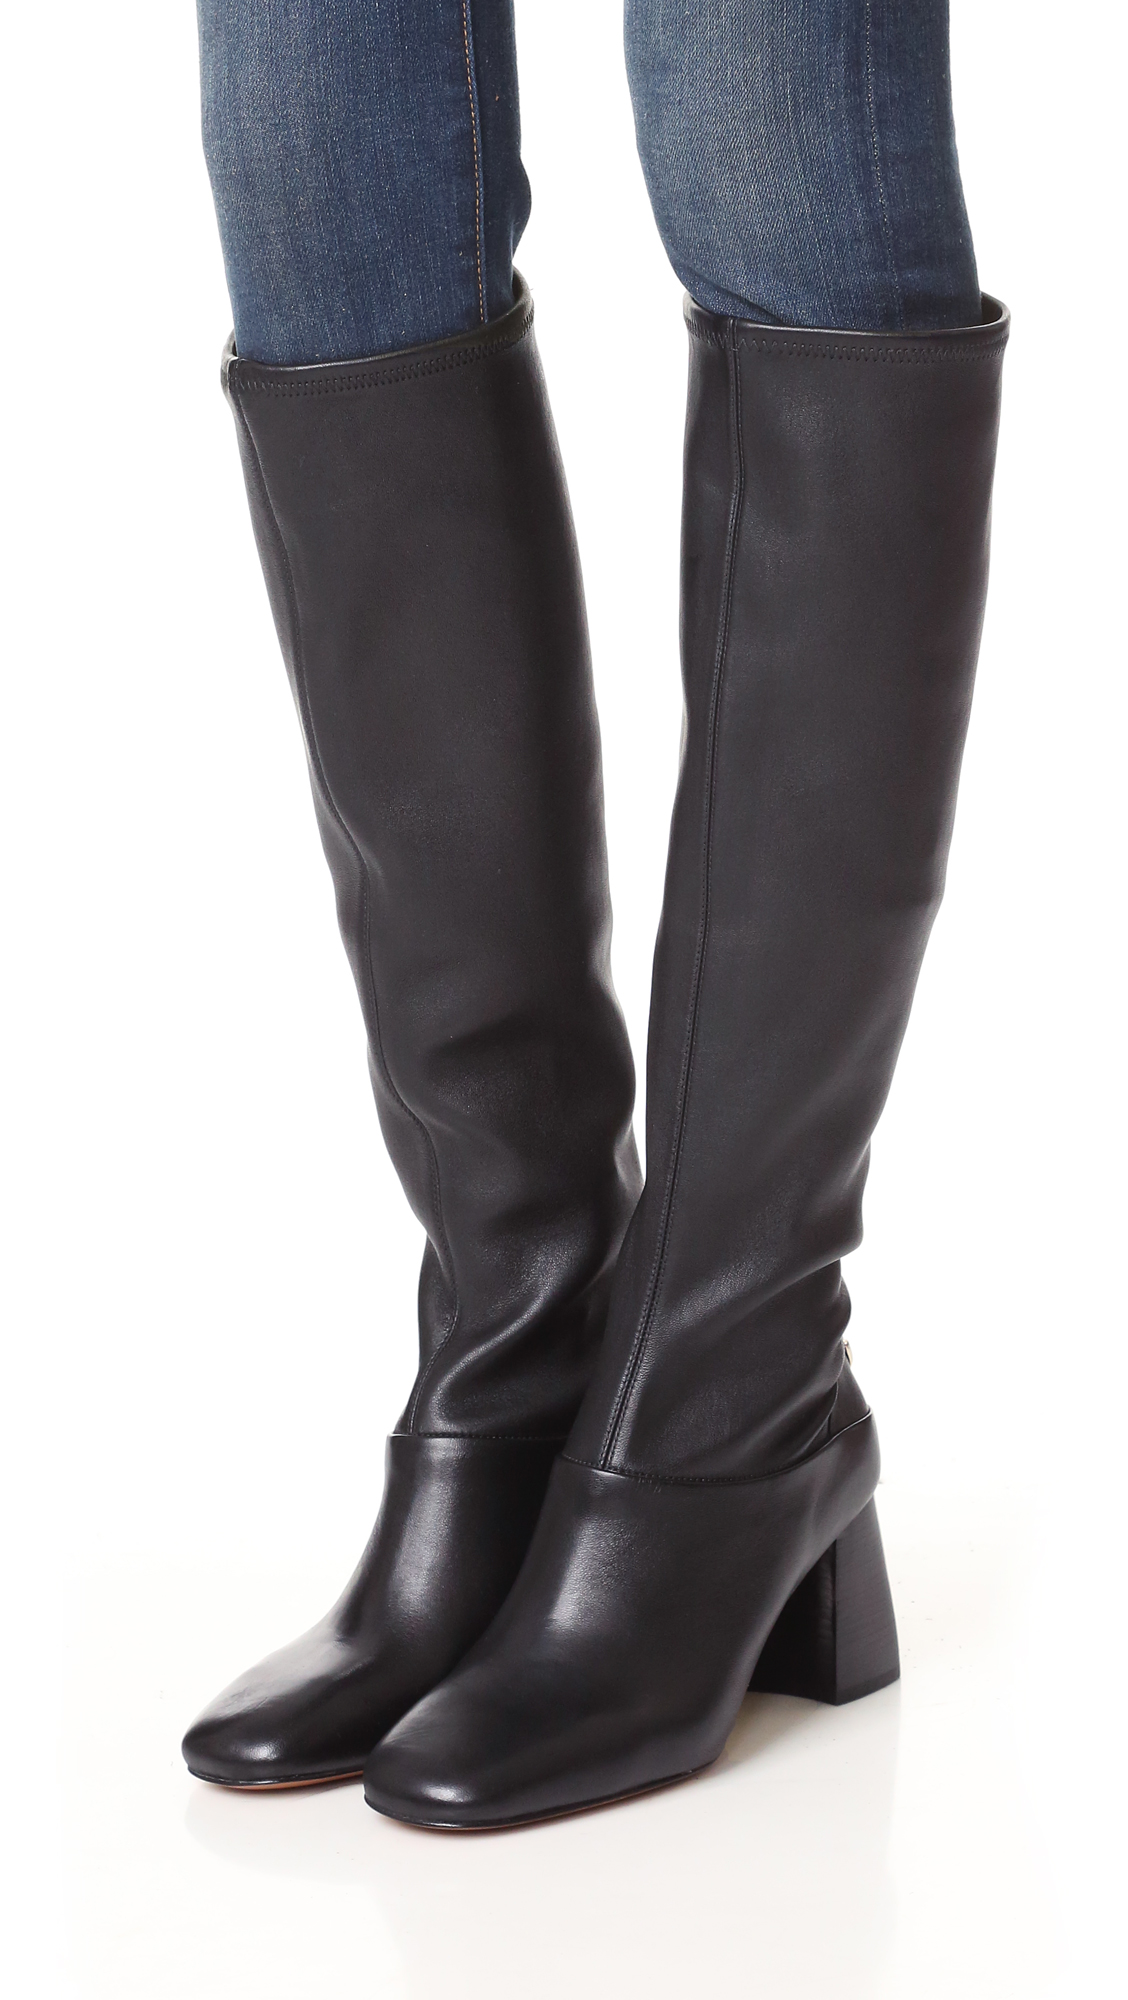 3d420b77af23 Tory Burch Sidney 70mm Boot J8JMHAUyw - alikeplaces.com